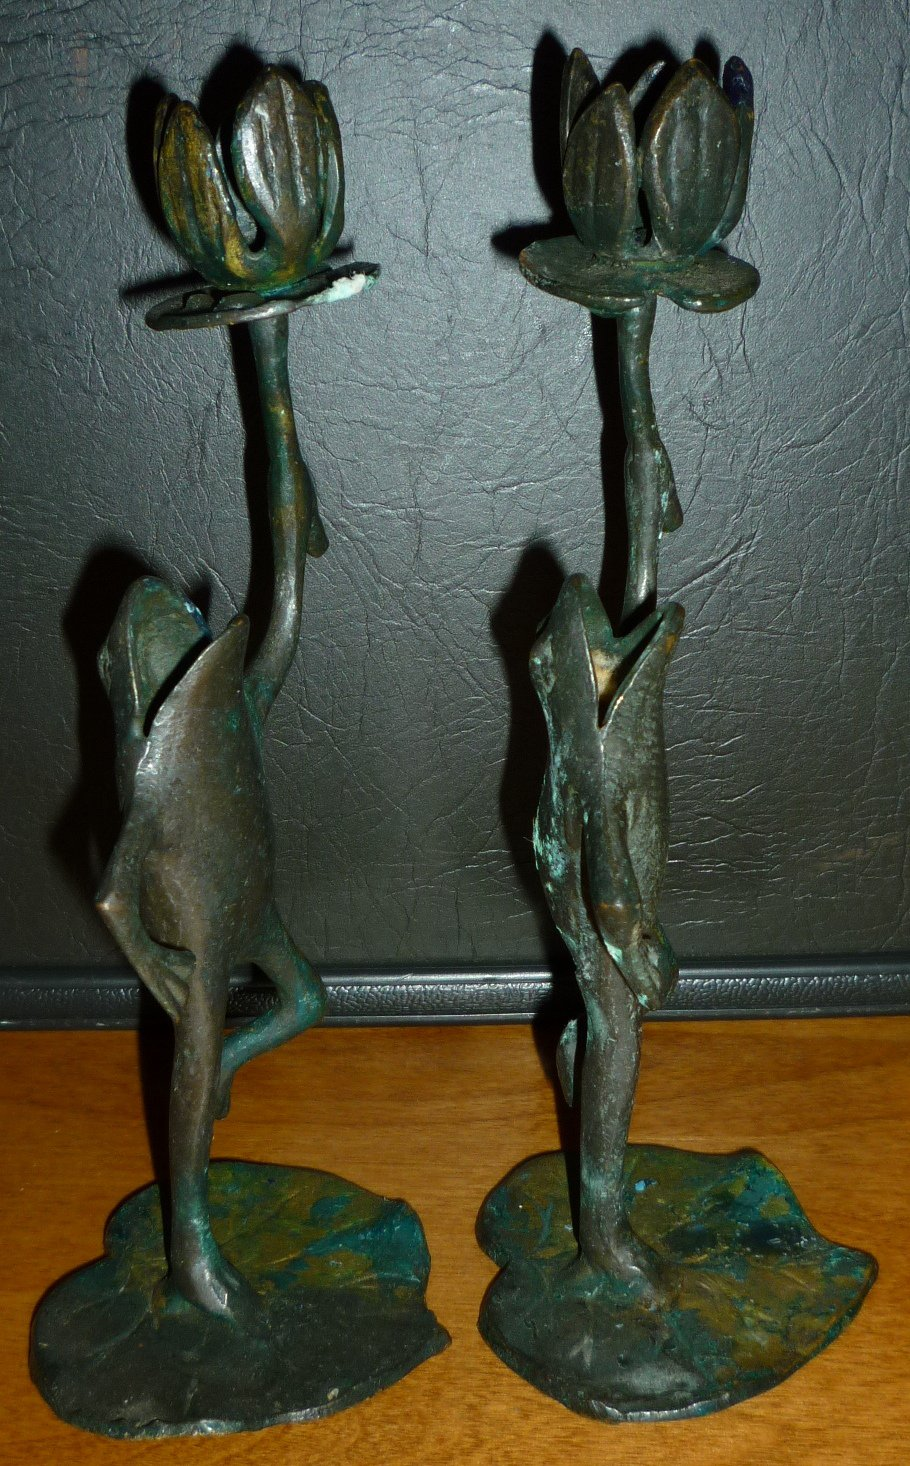 VINTAGE WROUGHT IRON PAINTED GREEN CANDLEHOLDERS FIGURAL FROG SET OF 2